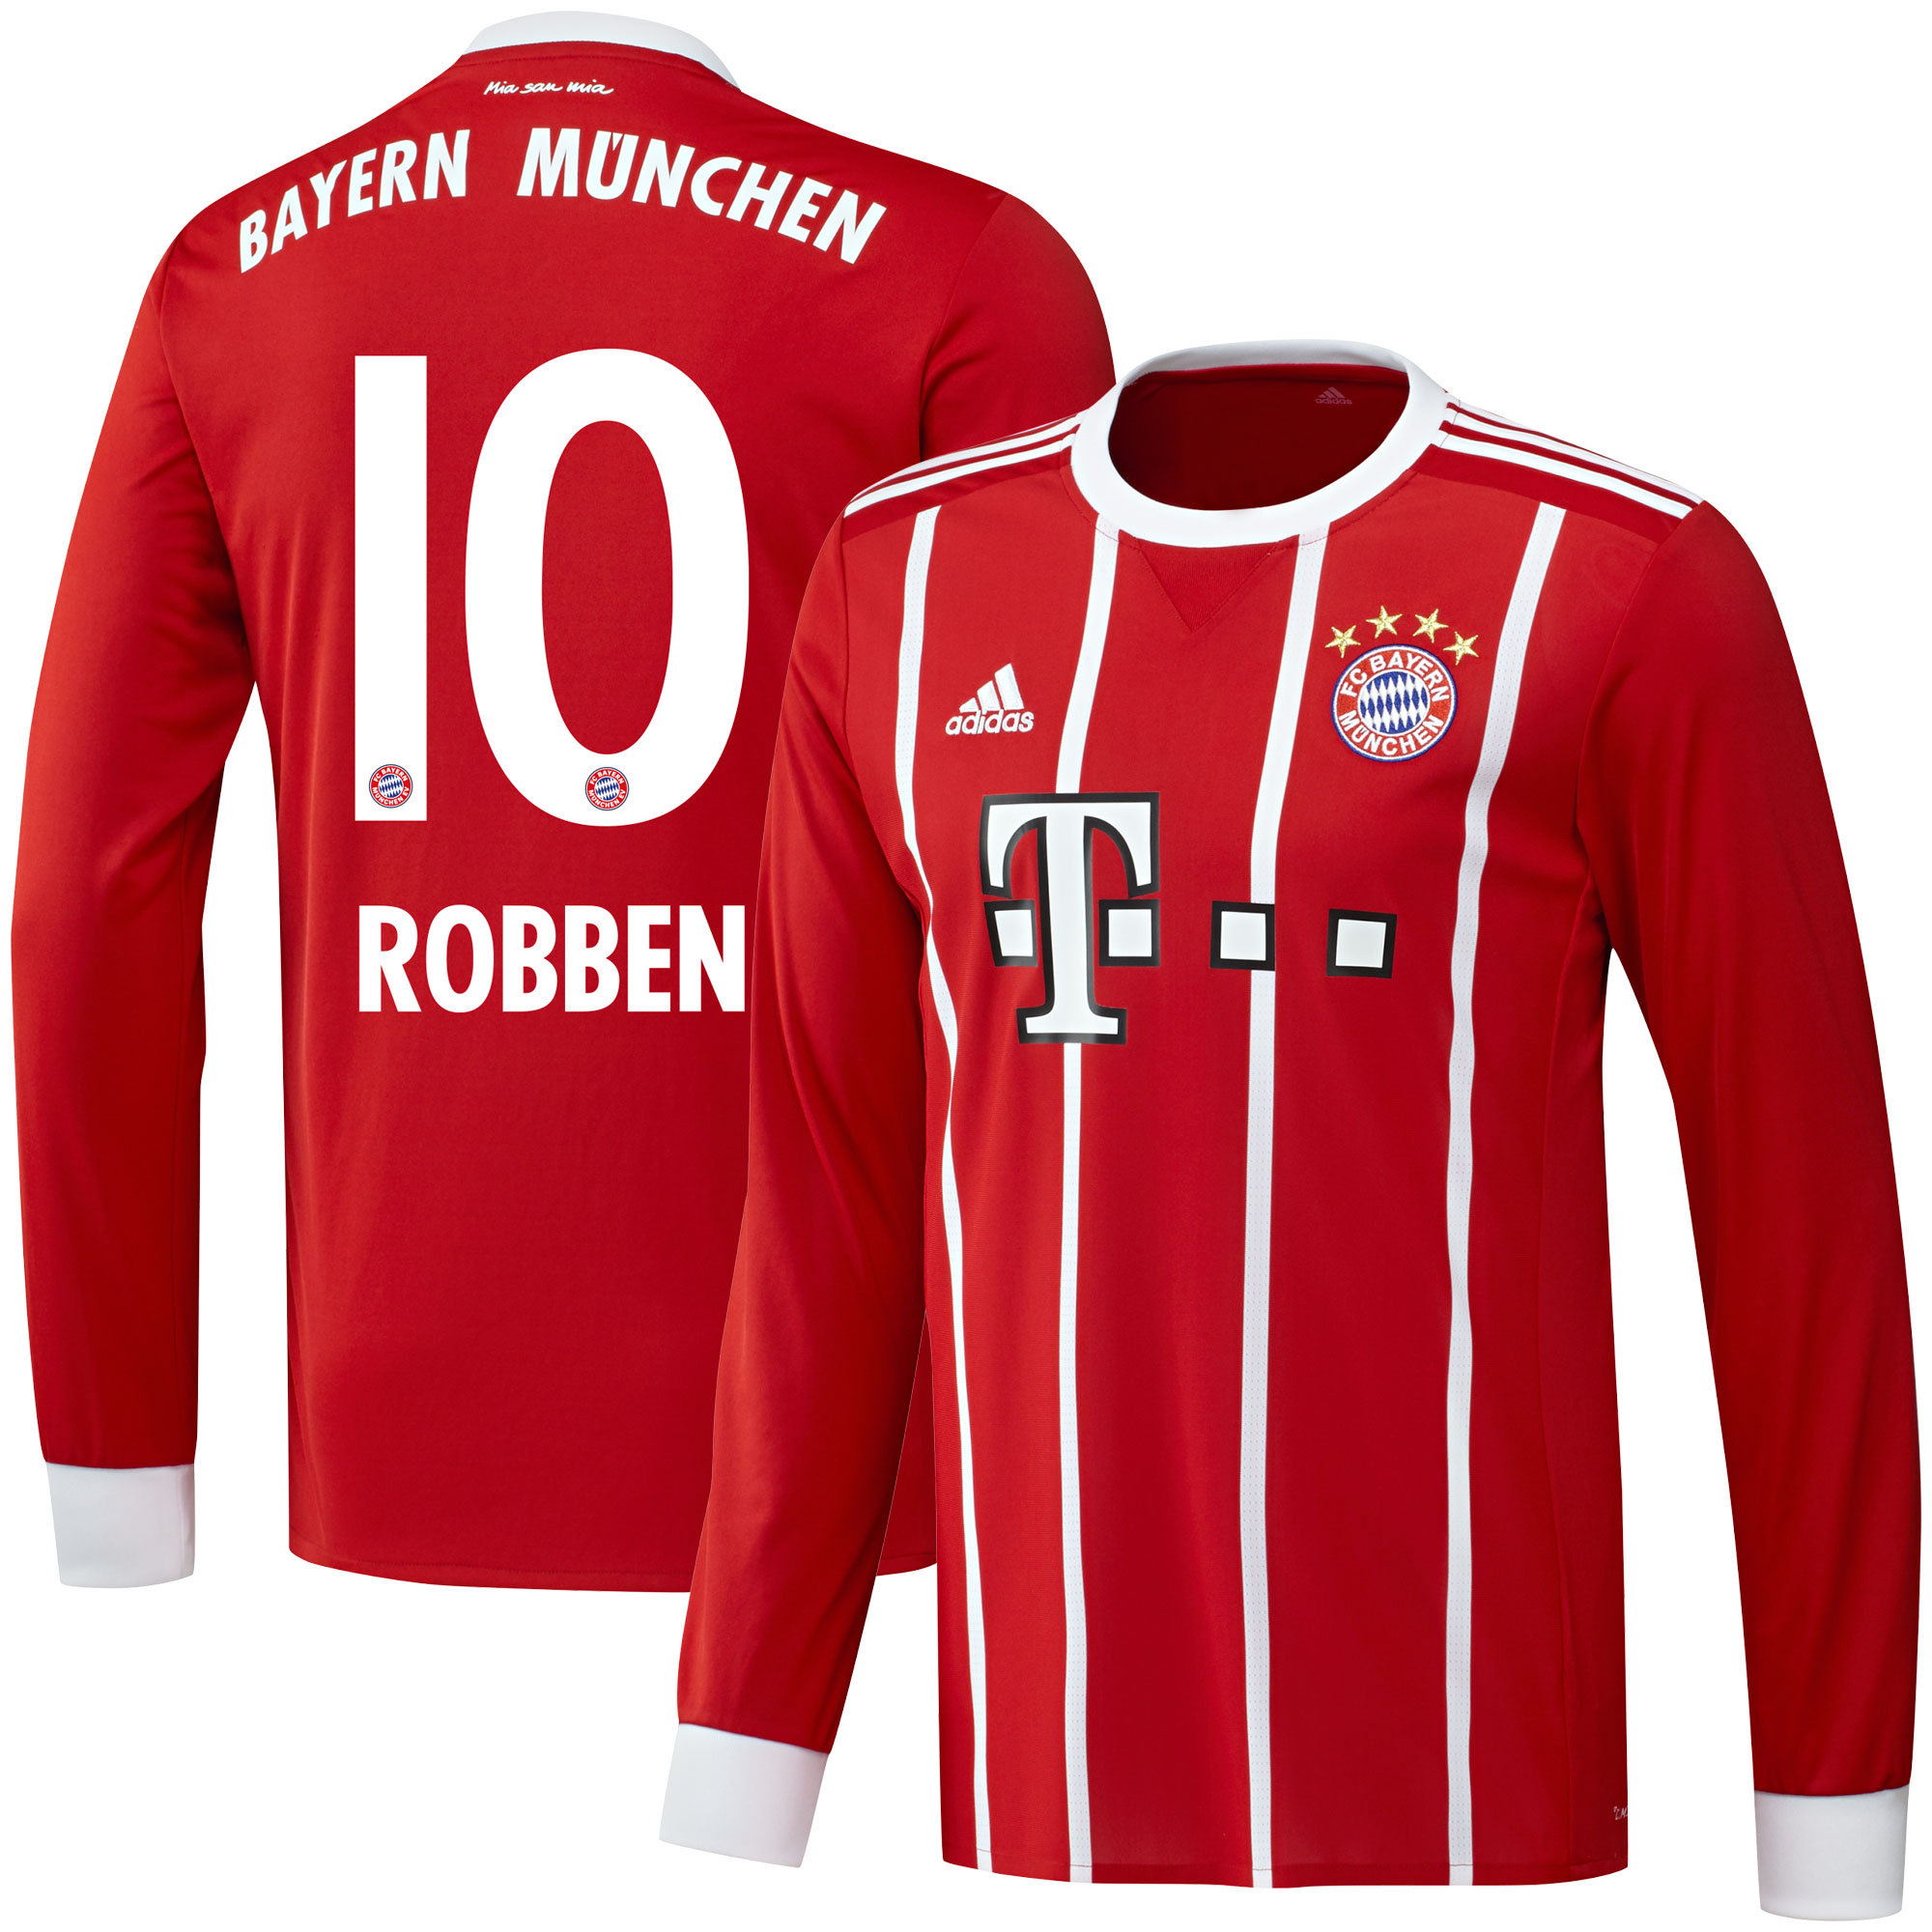 Bayern Munich Home L/S Robben Jersey 2017 / 2018 (Official Printing) - 62